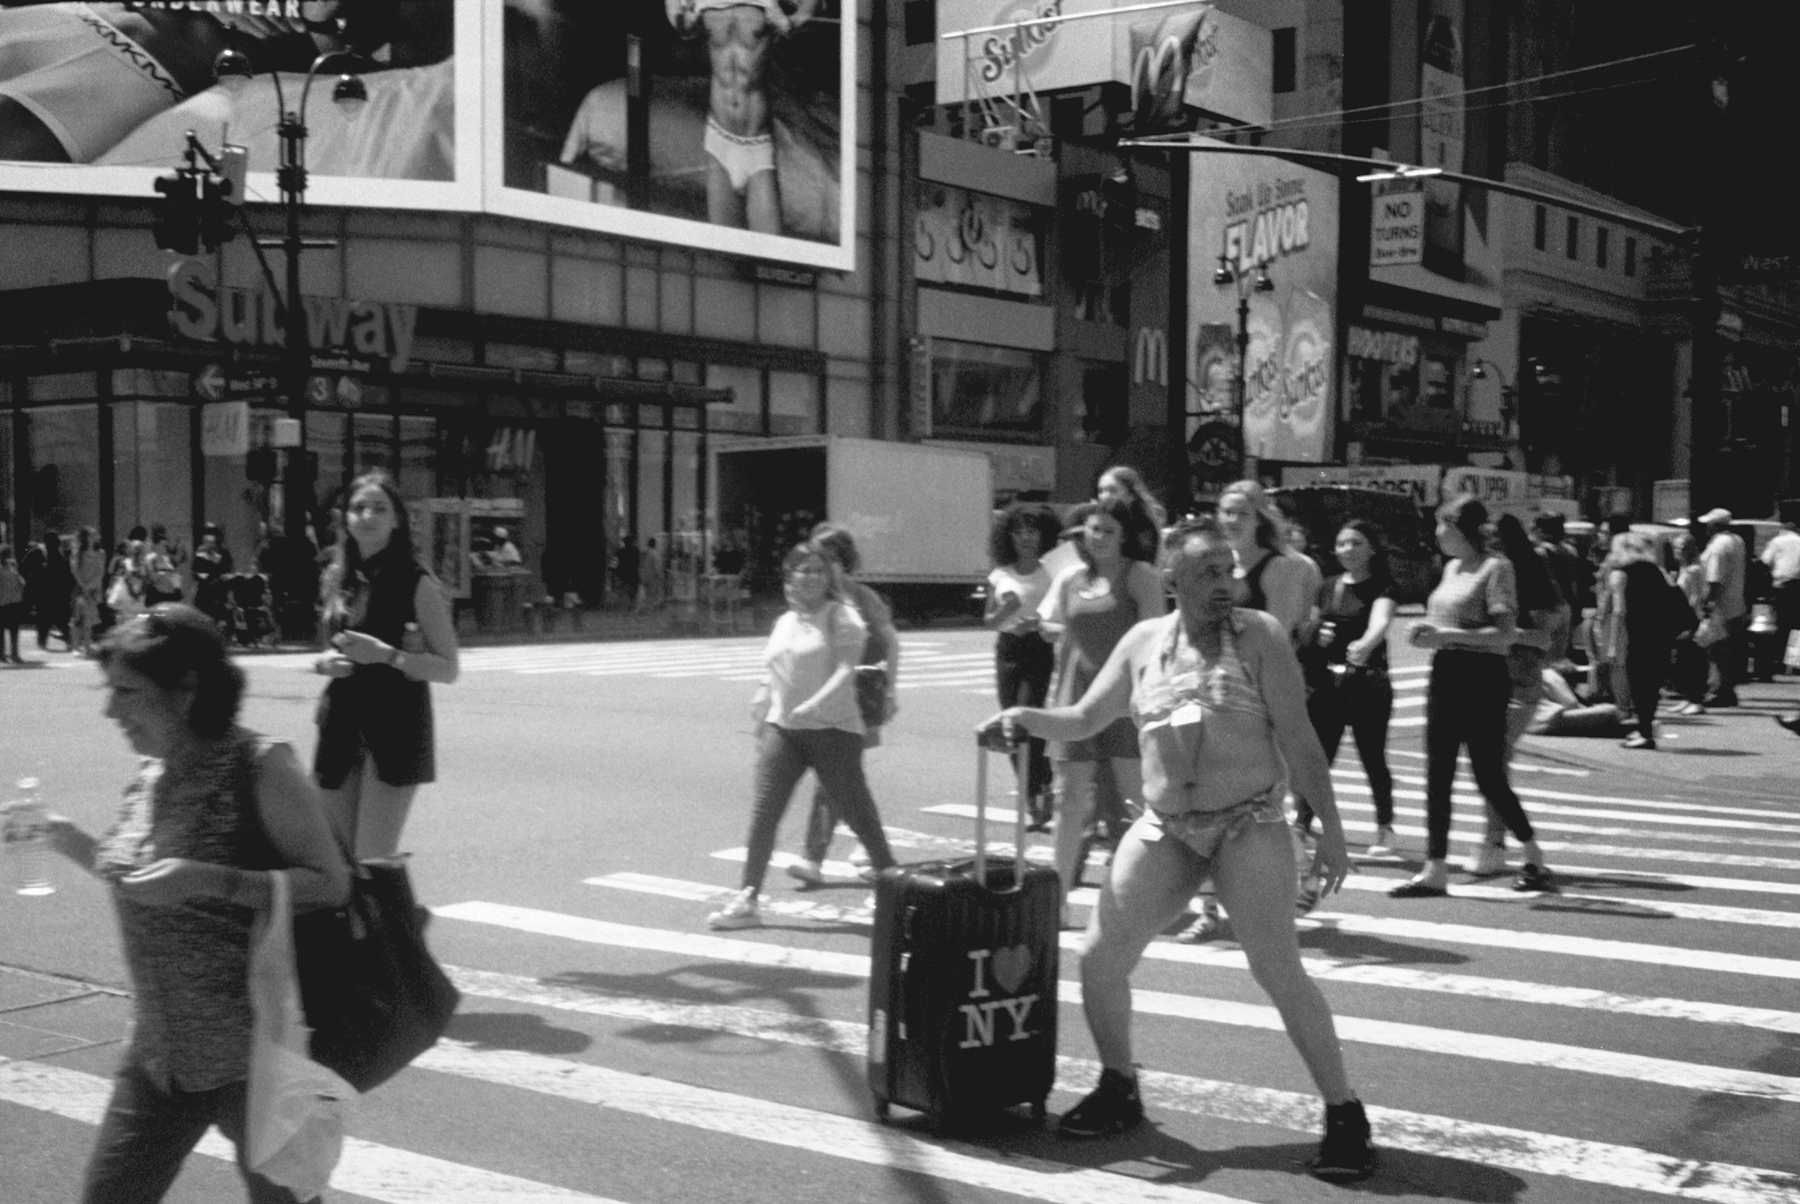 A Moment in the Streets. Midtown Manhattan. Photographed on 135 (35mm) film. Konica C35